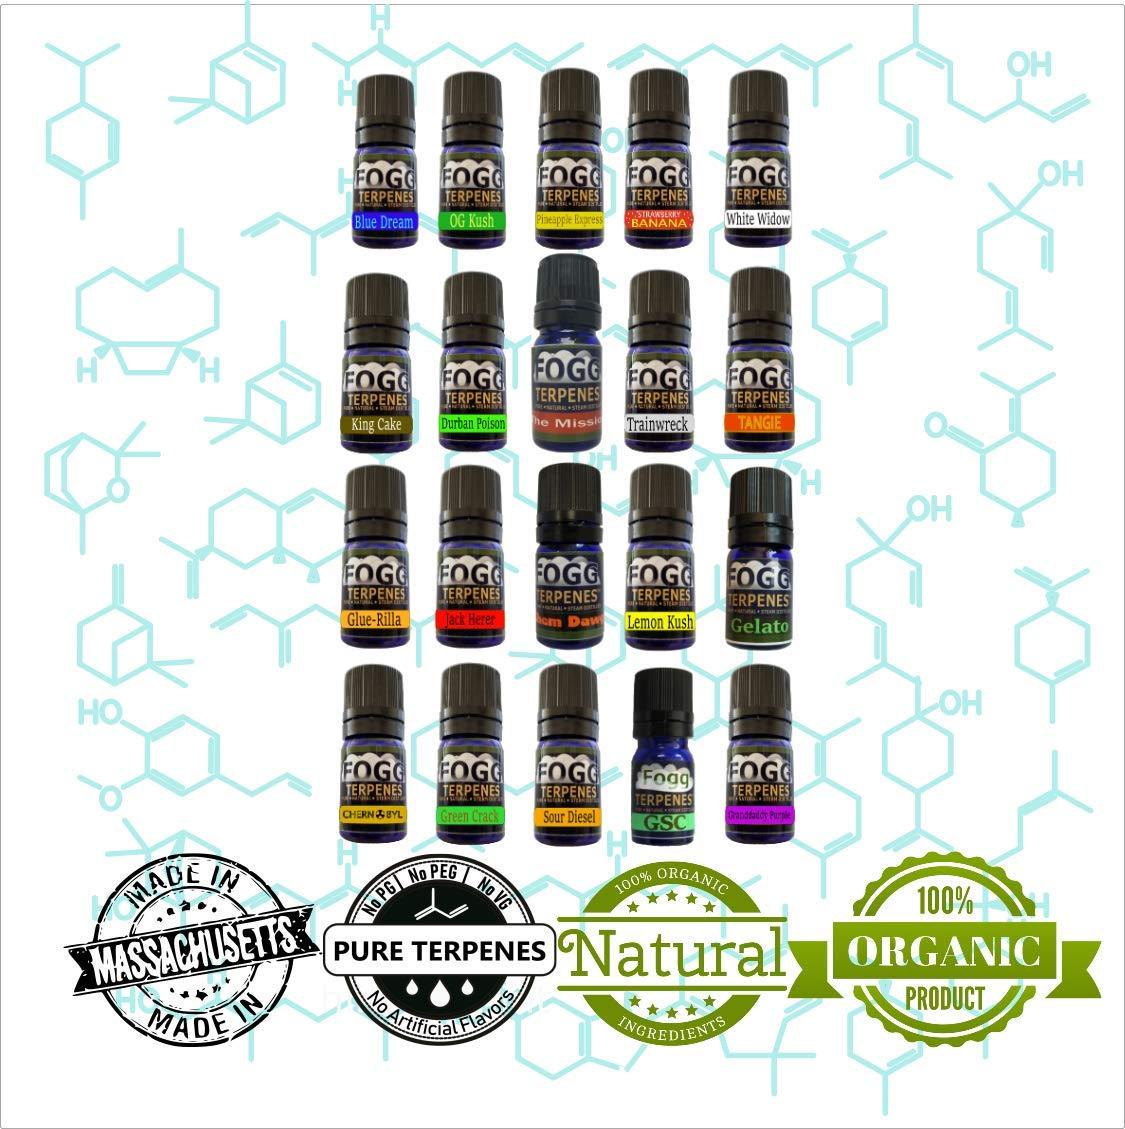 FOGG Terpenes - Complete Collection (5 ml) by FOGG Terpenes